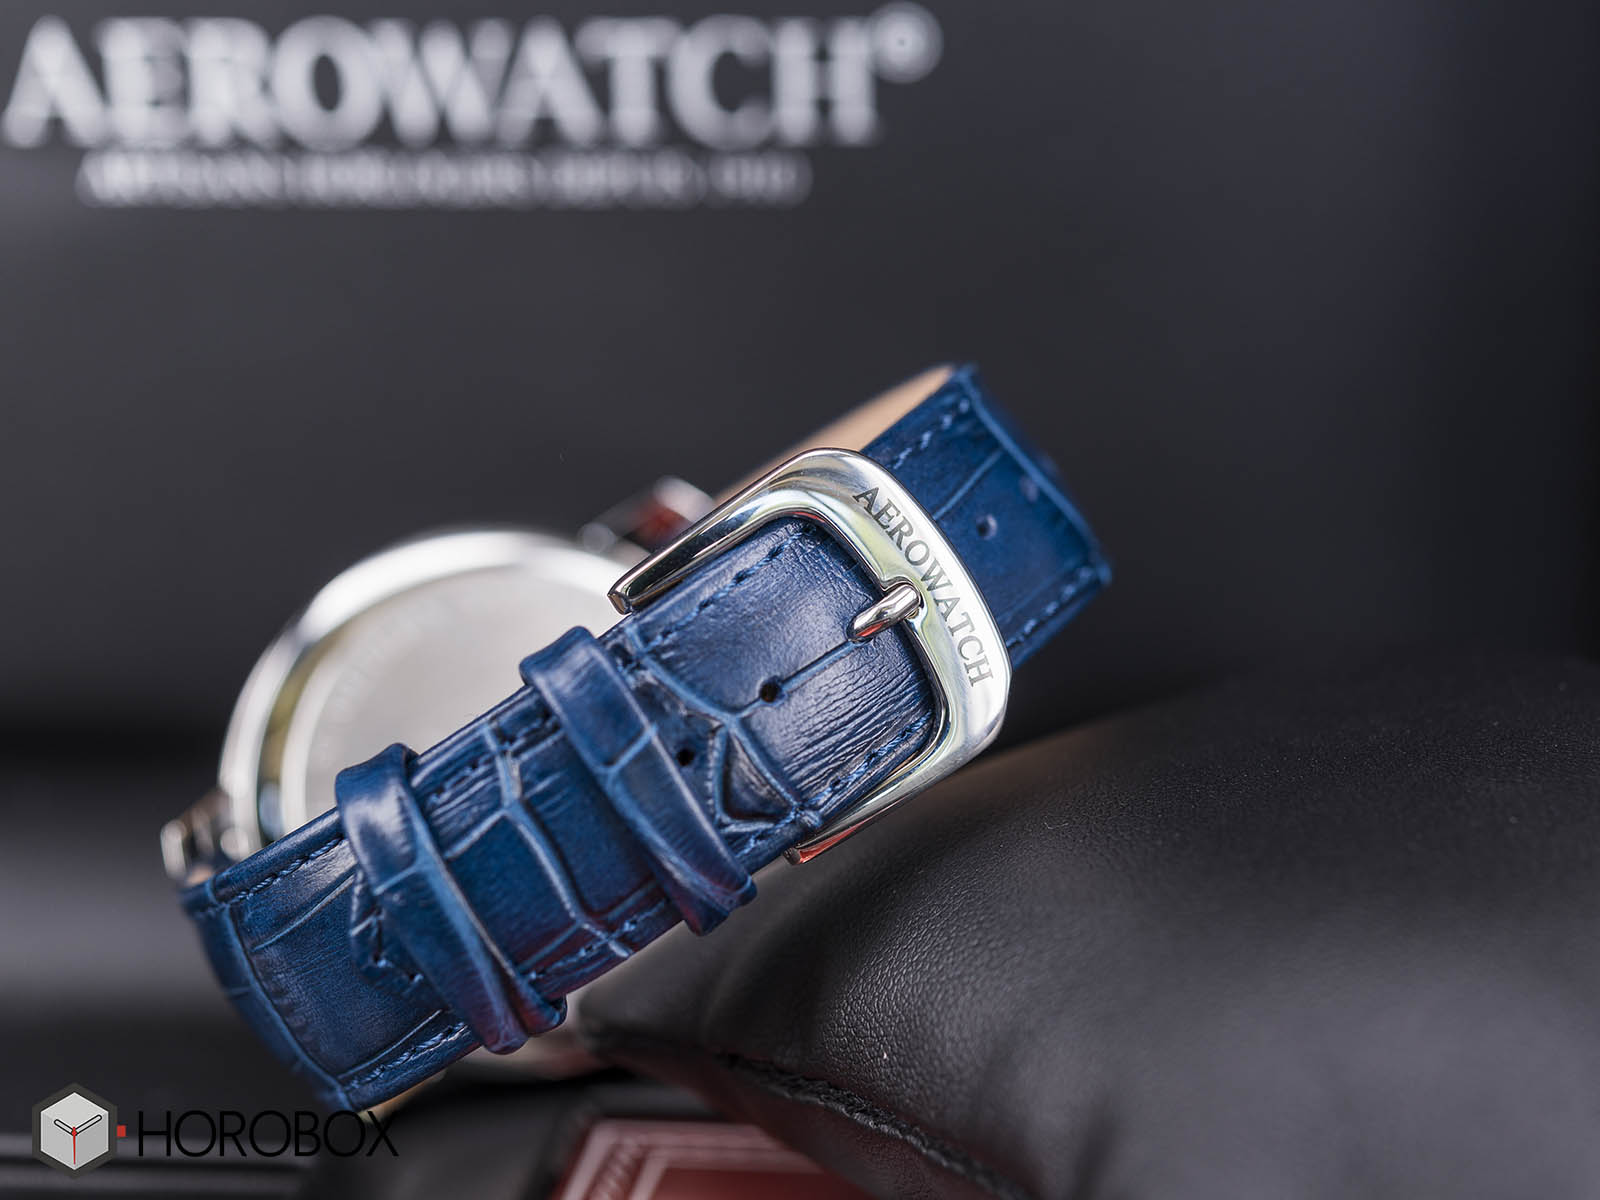 aerowatch-turkey-limited-edition-6.jpg